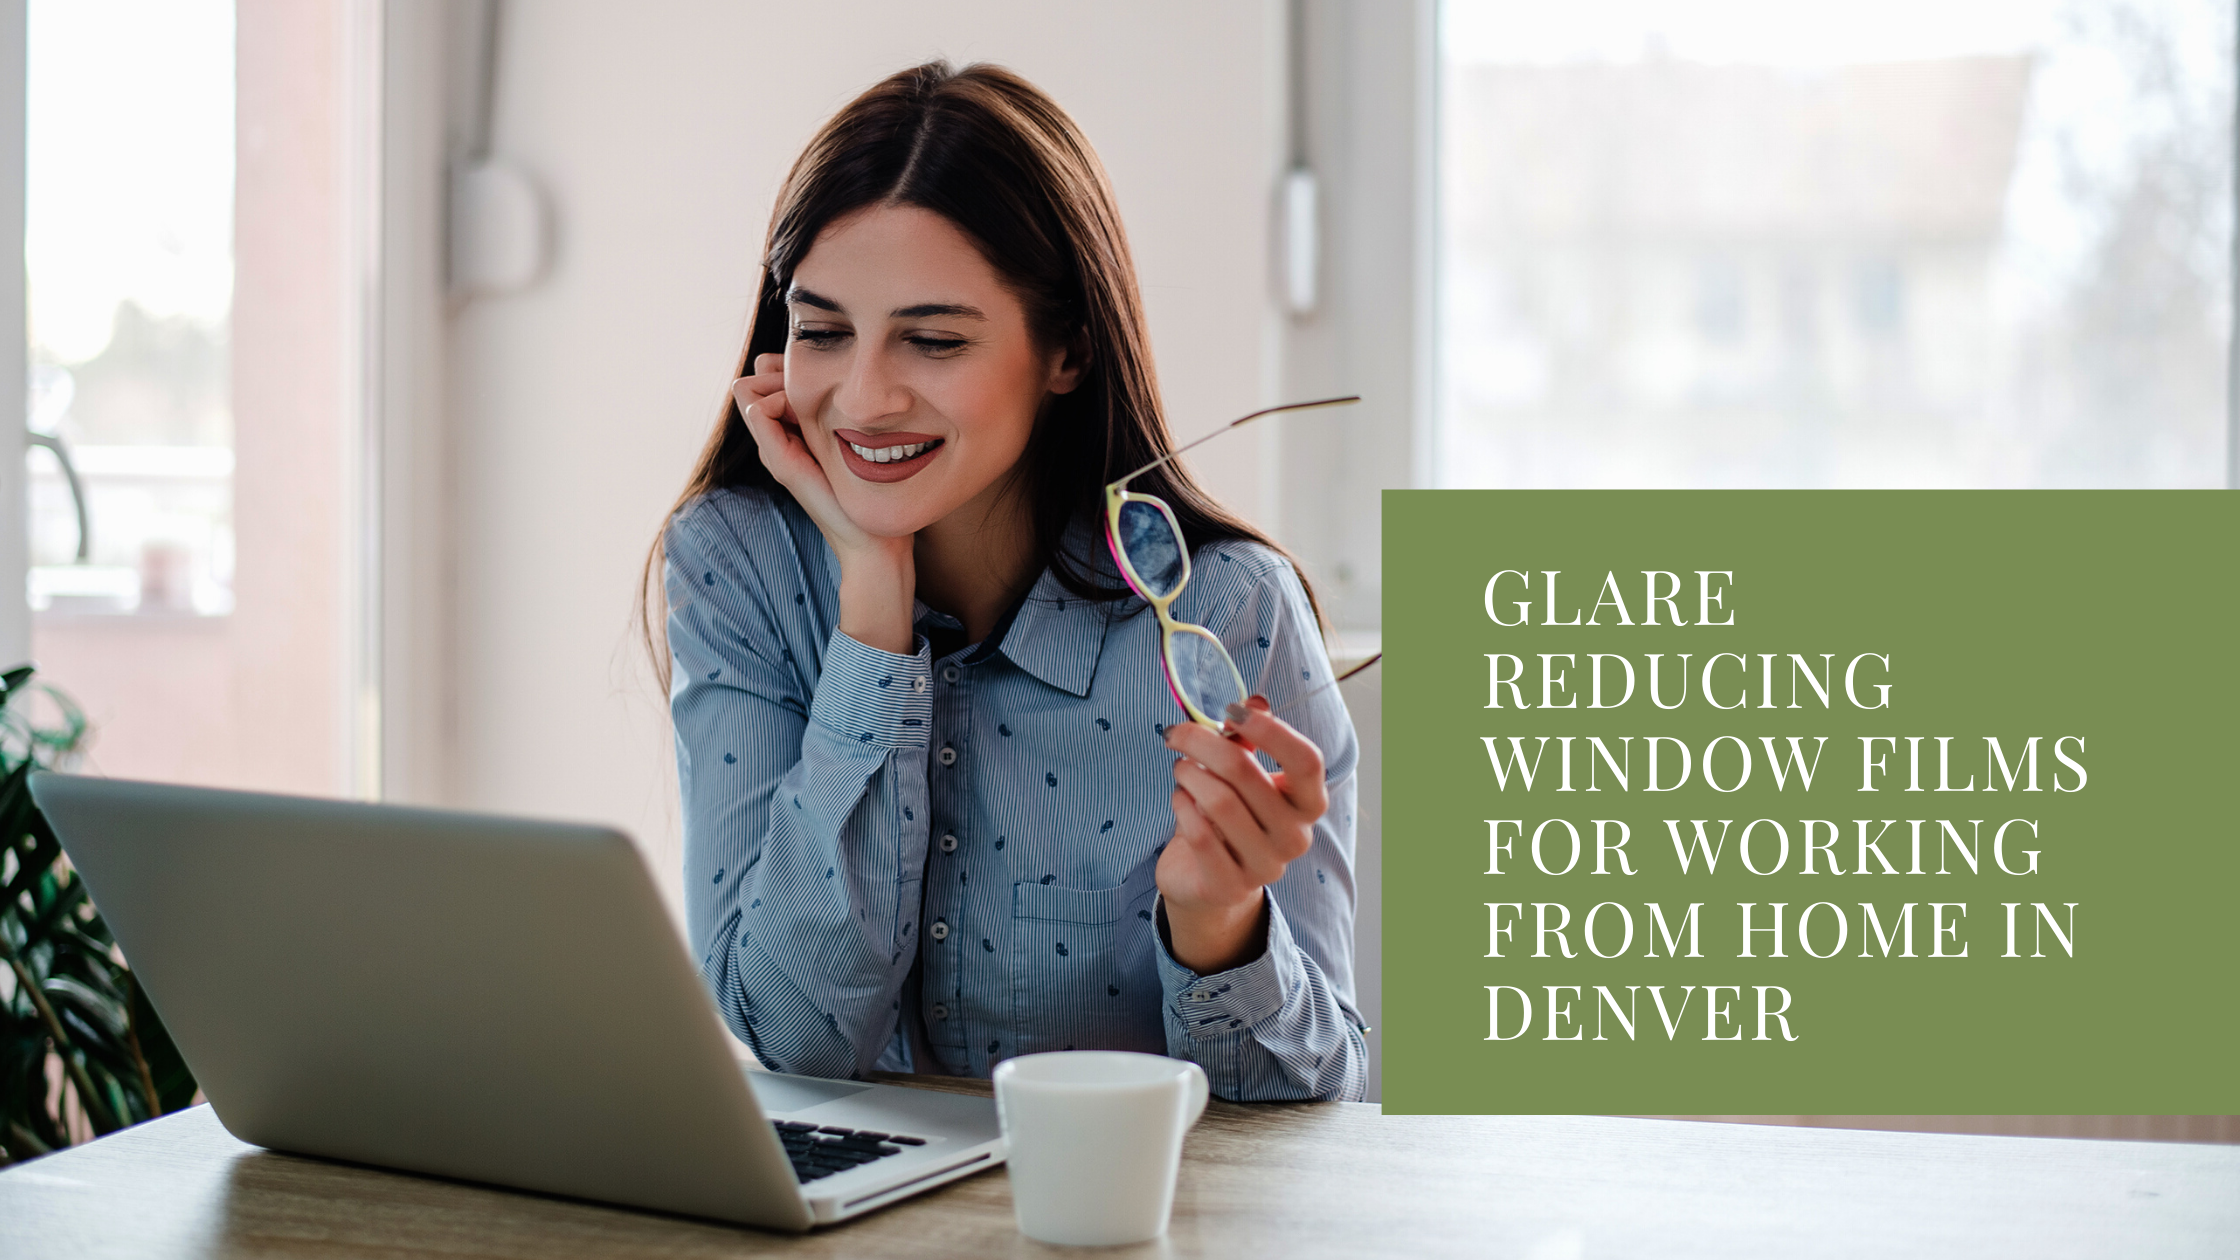 Glare Reducing Window Films for Working from Home in Denver